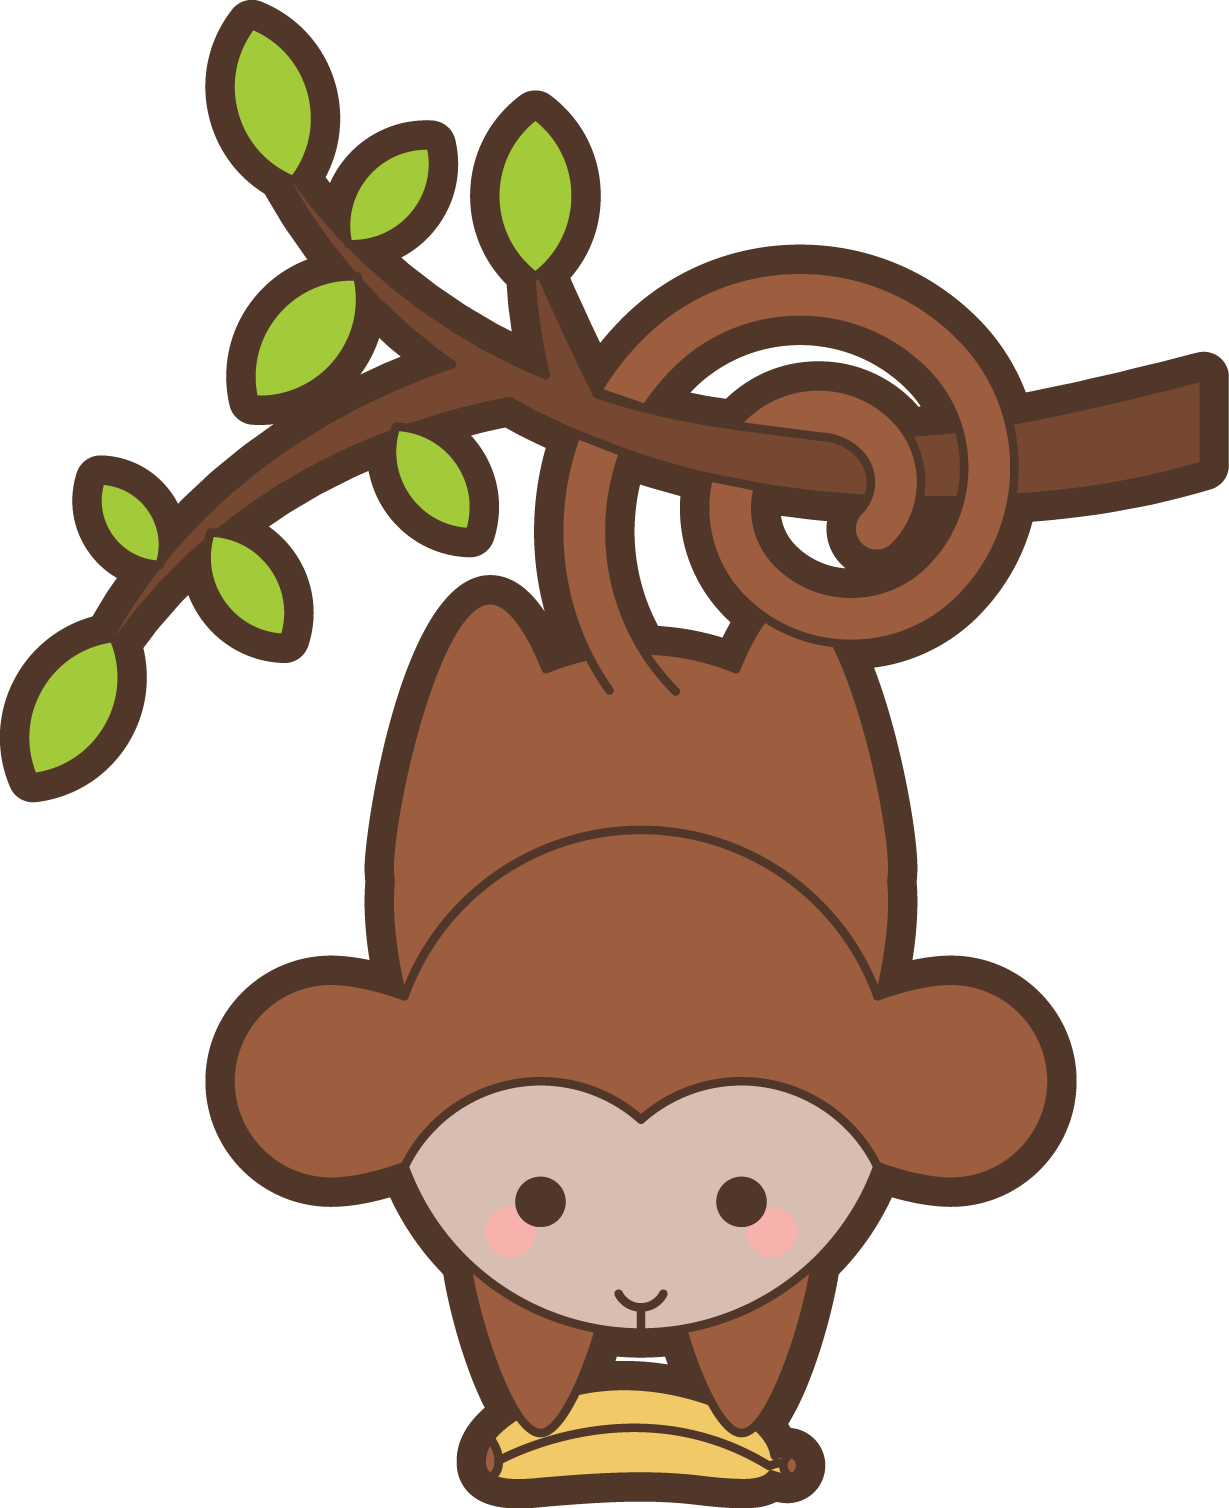 High Resolution Monkey Png Icon image #26167